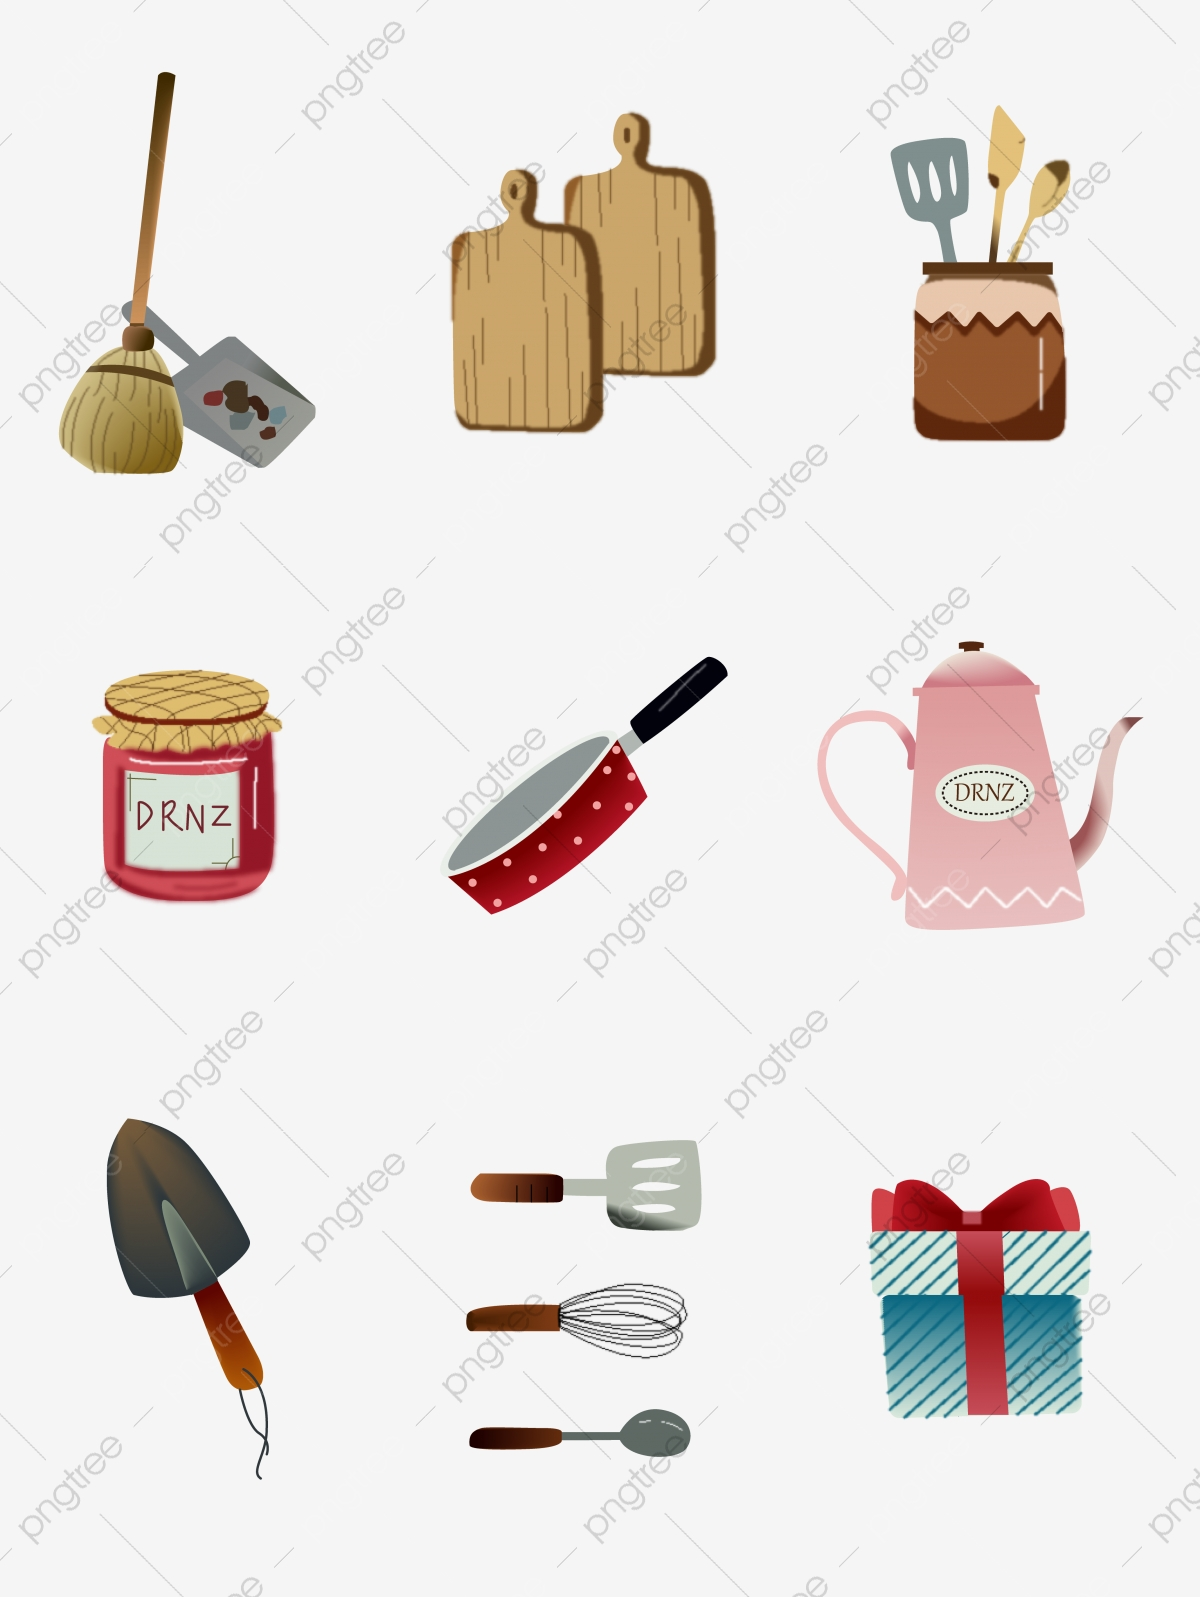 Everyday Cartoon Cute Hand Painted Home Kitchen Small Items Vector Material Broom Chopping Board Kitchenware Png And Vector With Transparent Background For Free Download